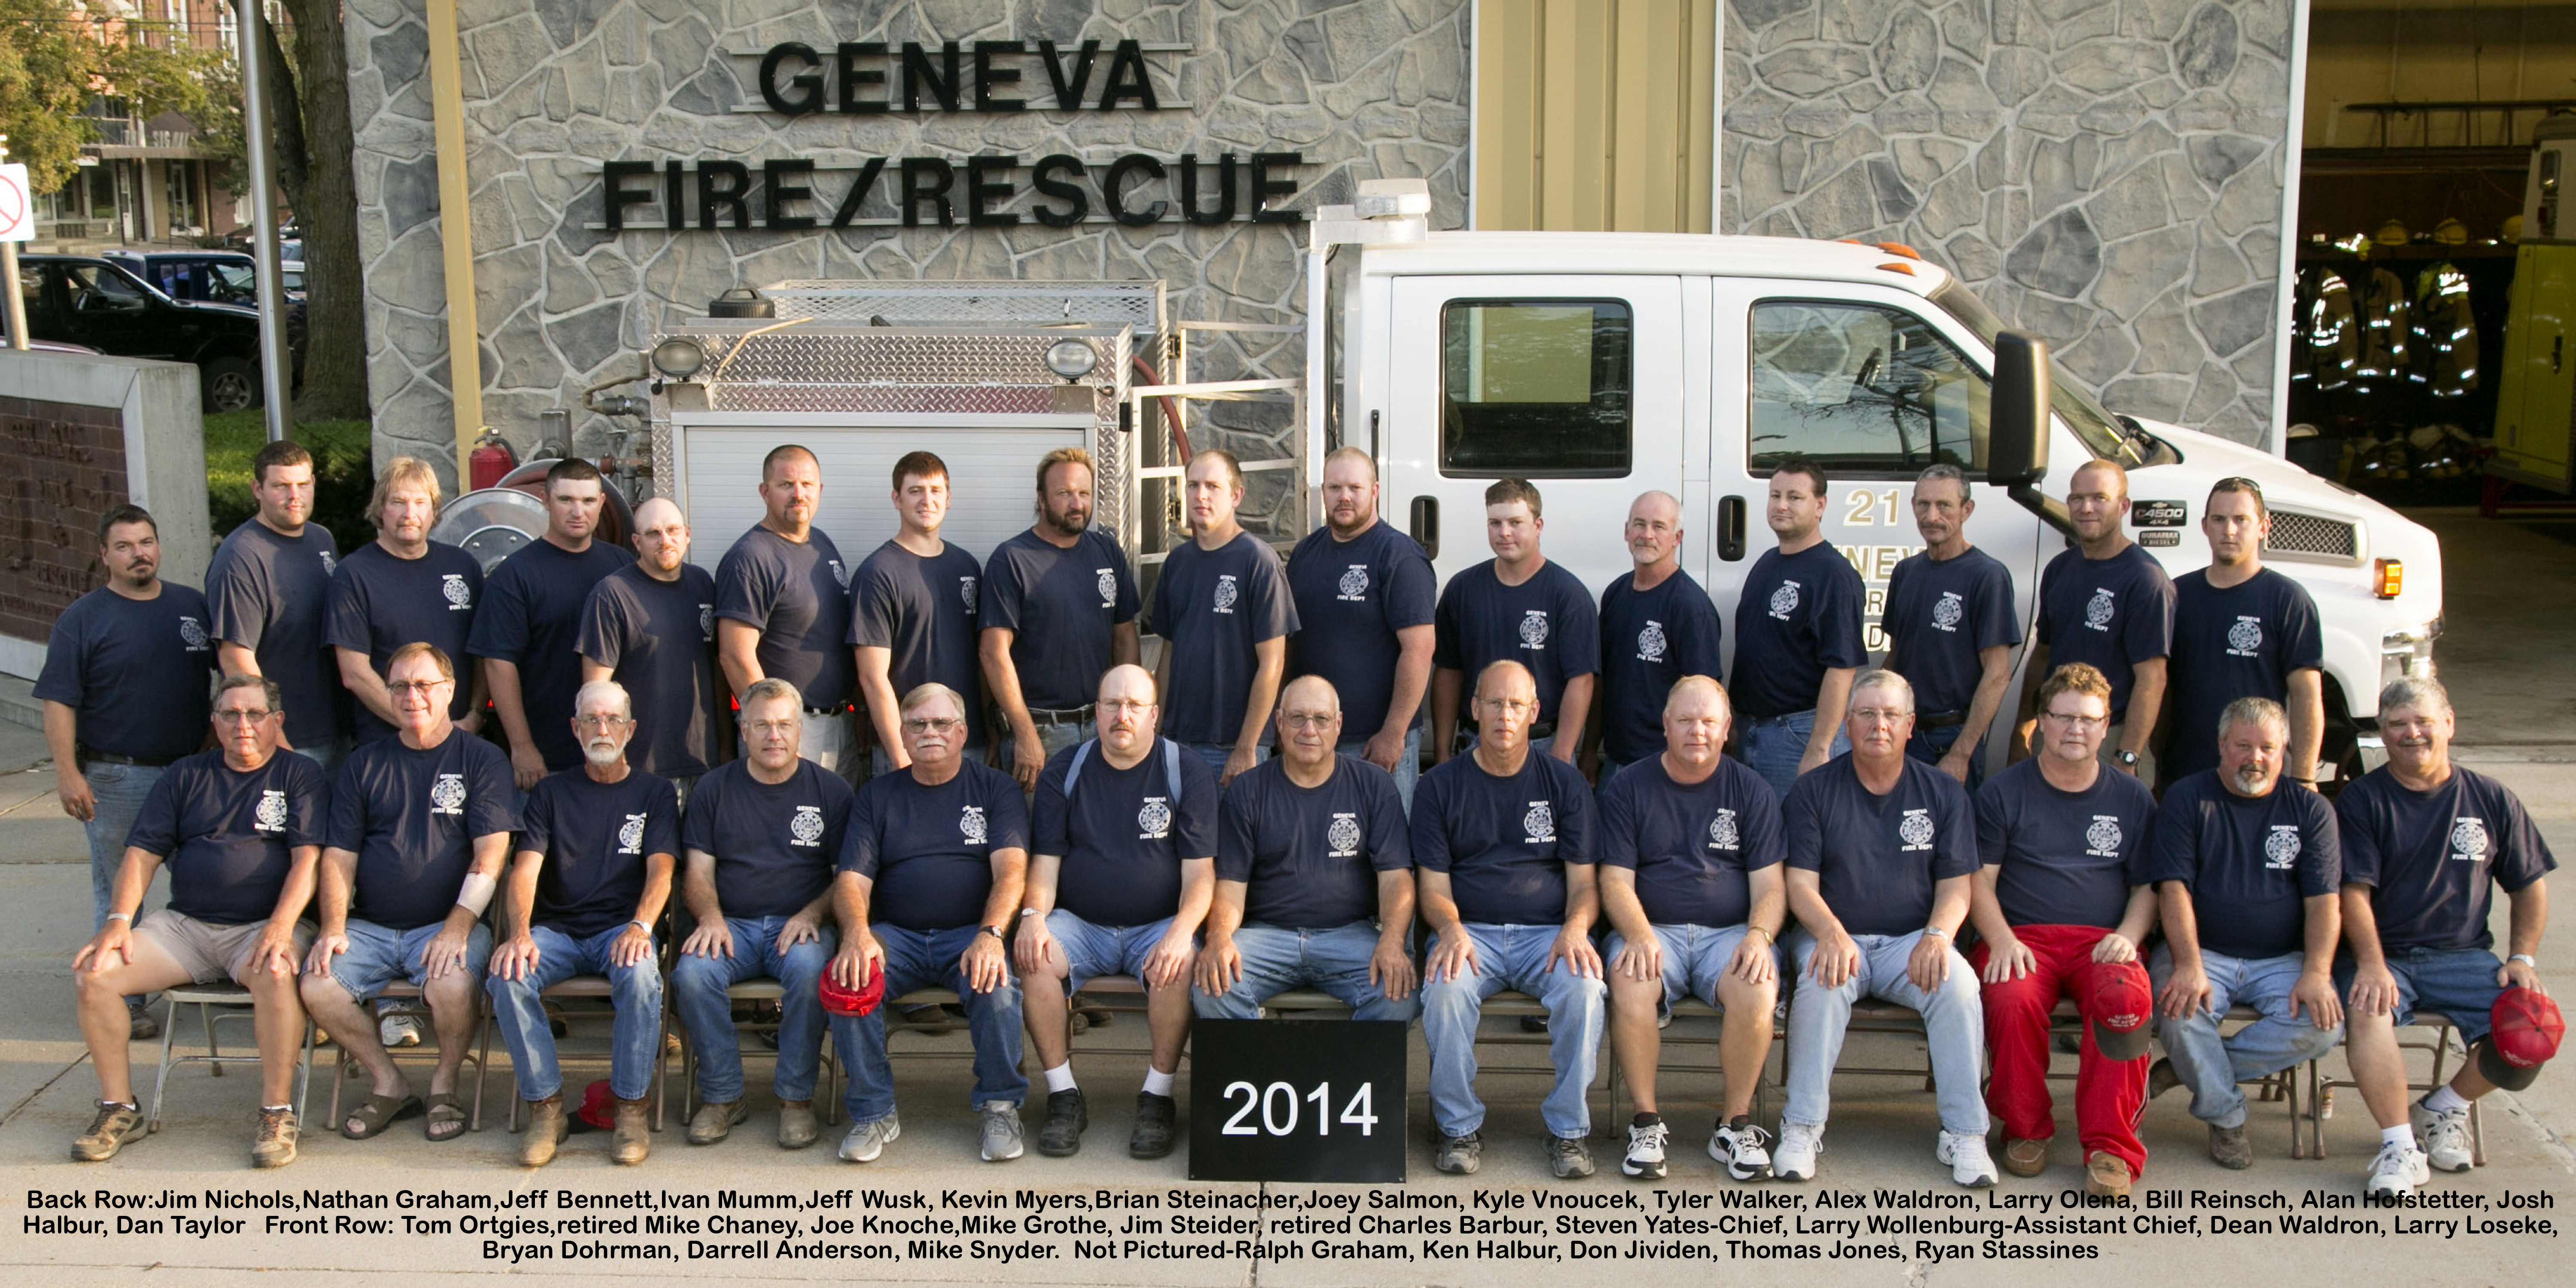 Geneva Fire Dept2014with names